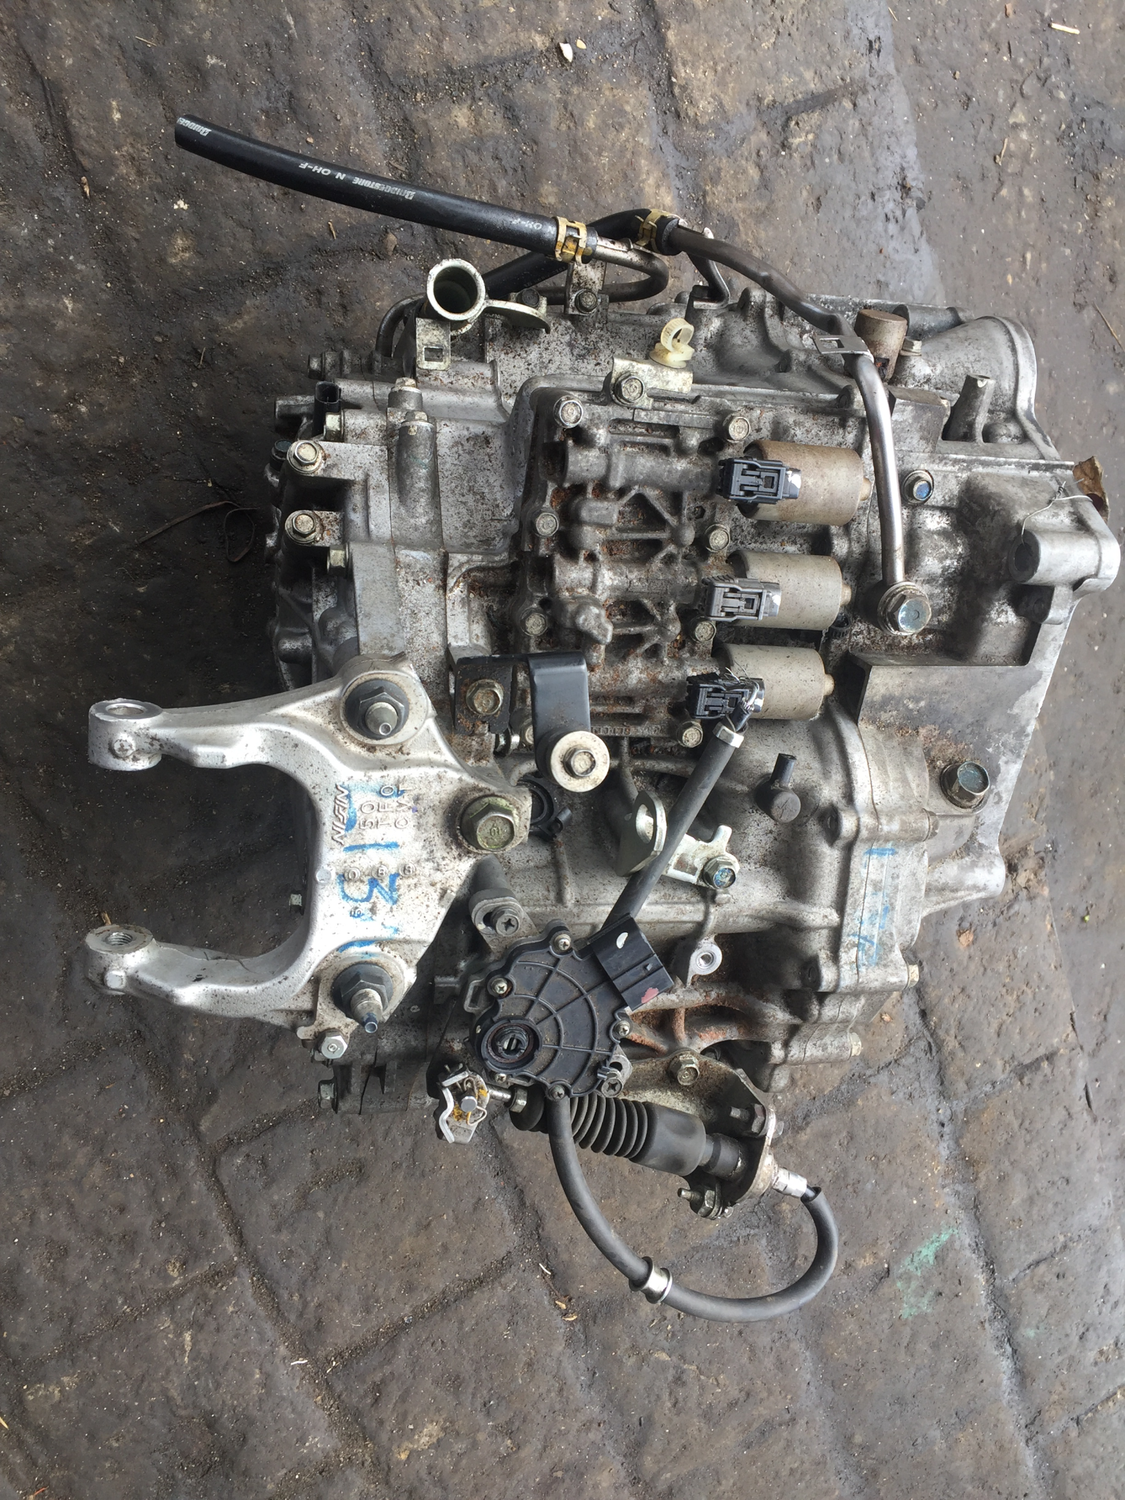 Honda Fit gear box L13A, 2wd